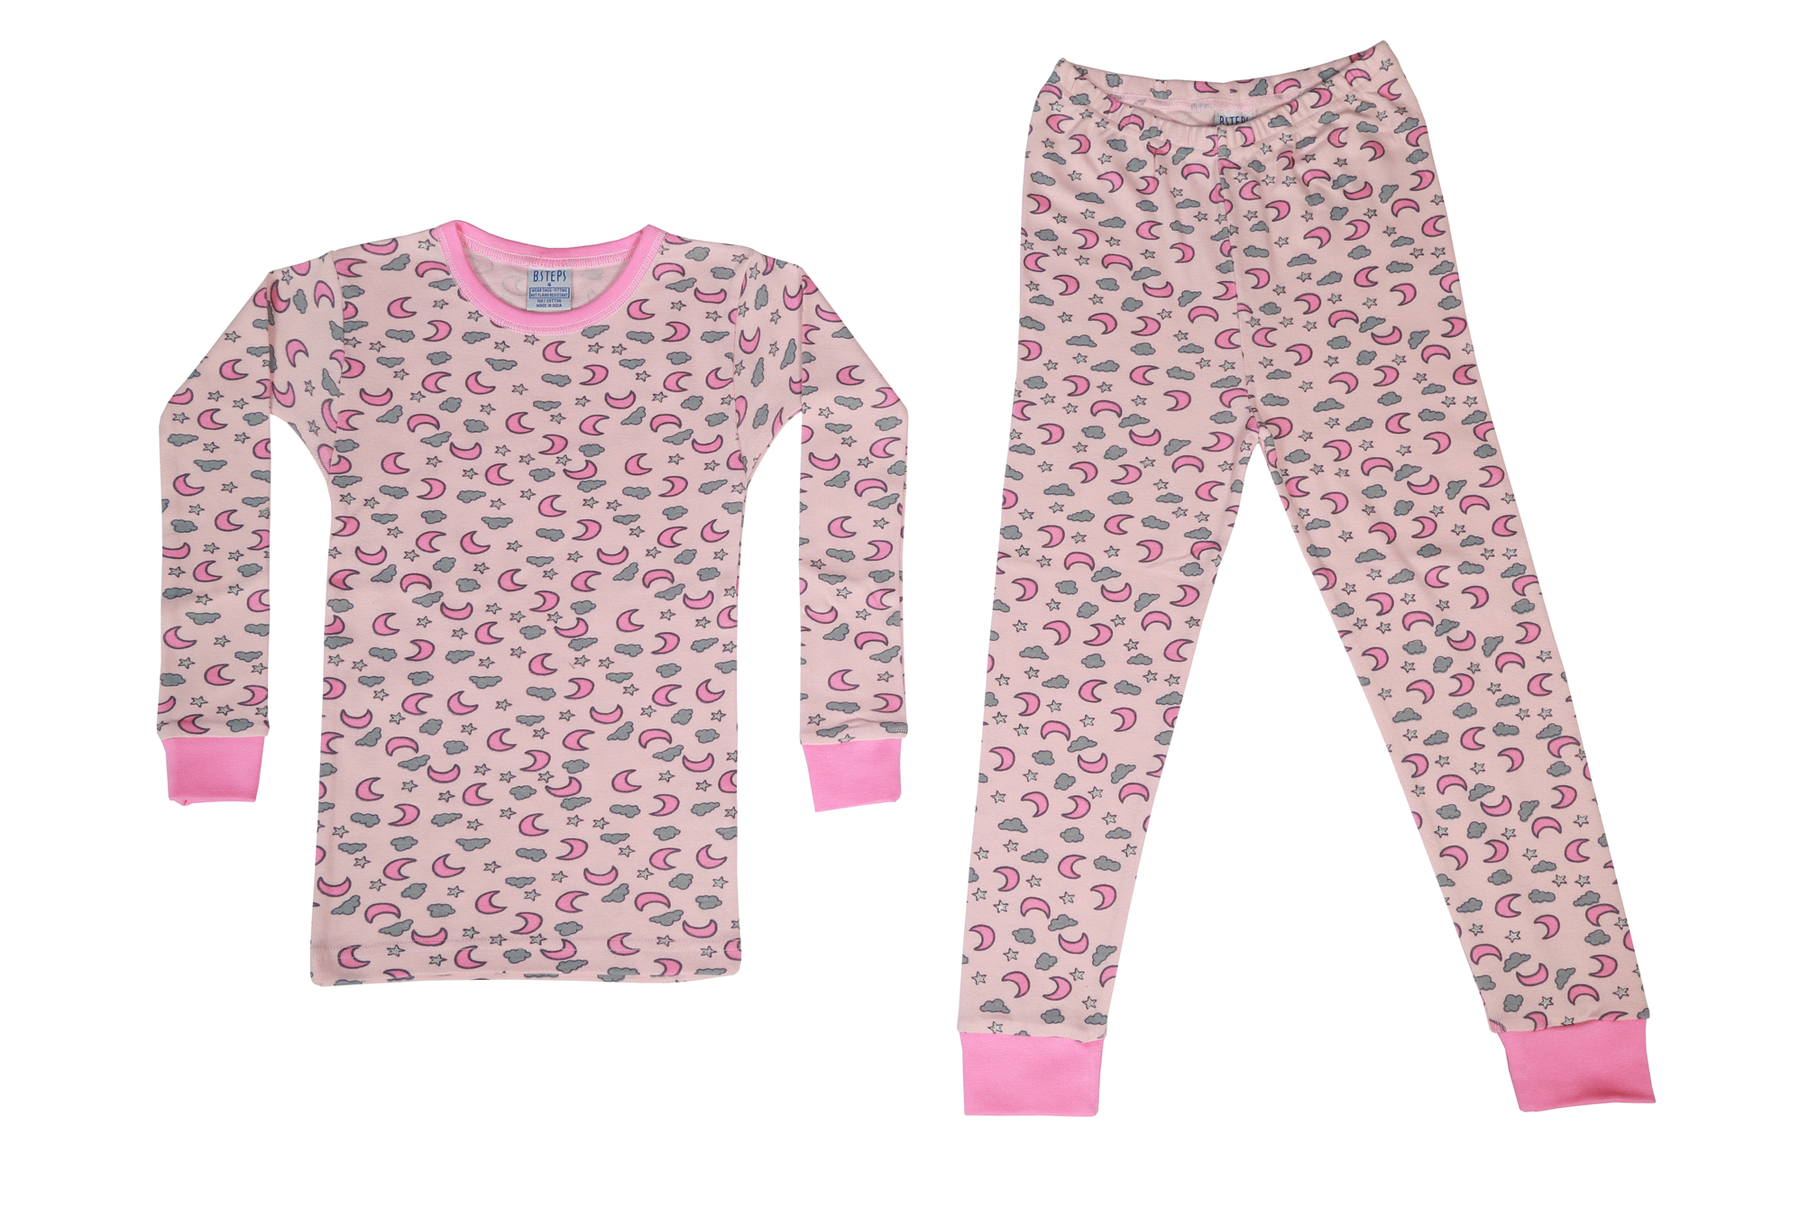 Pajamas - Moon Print on Pink